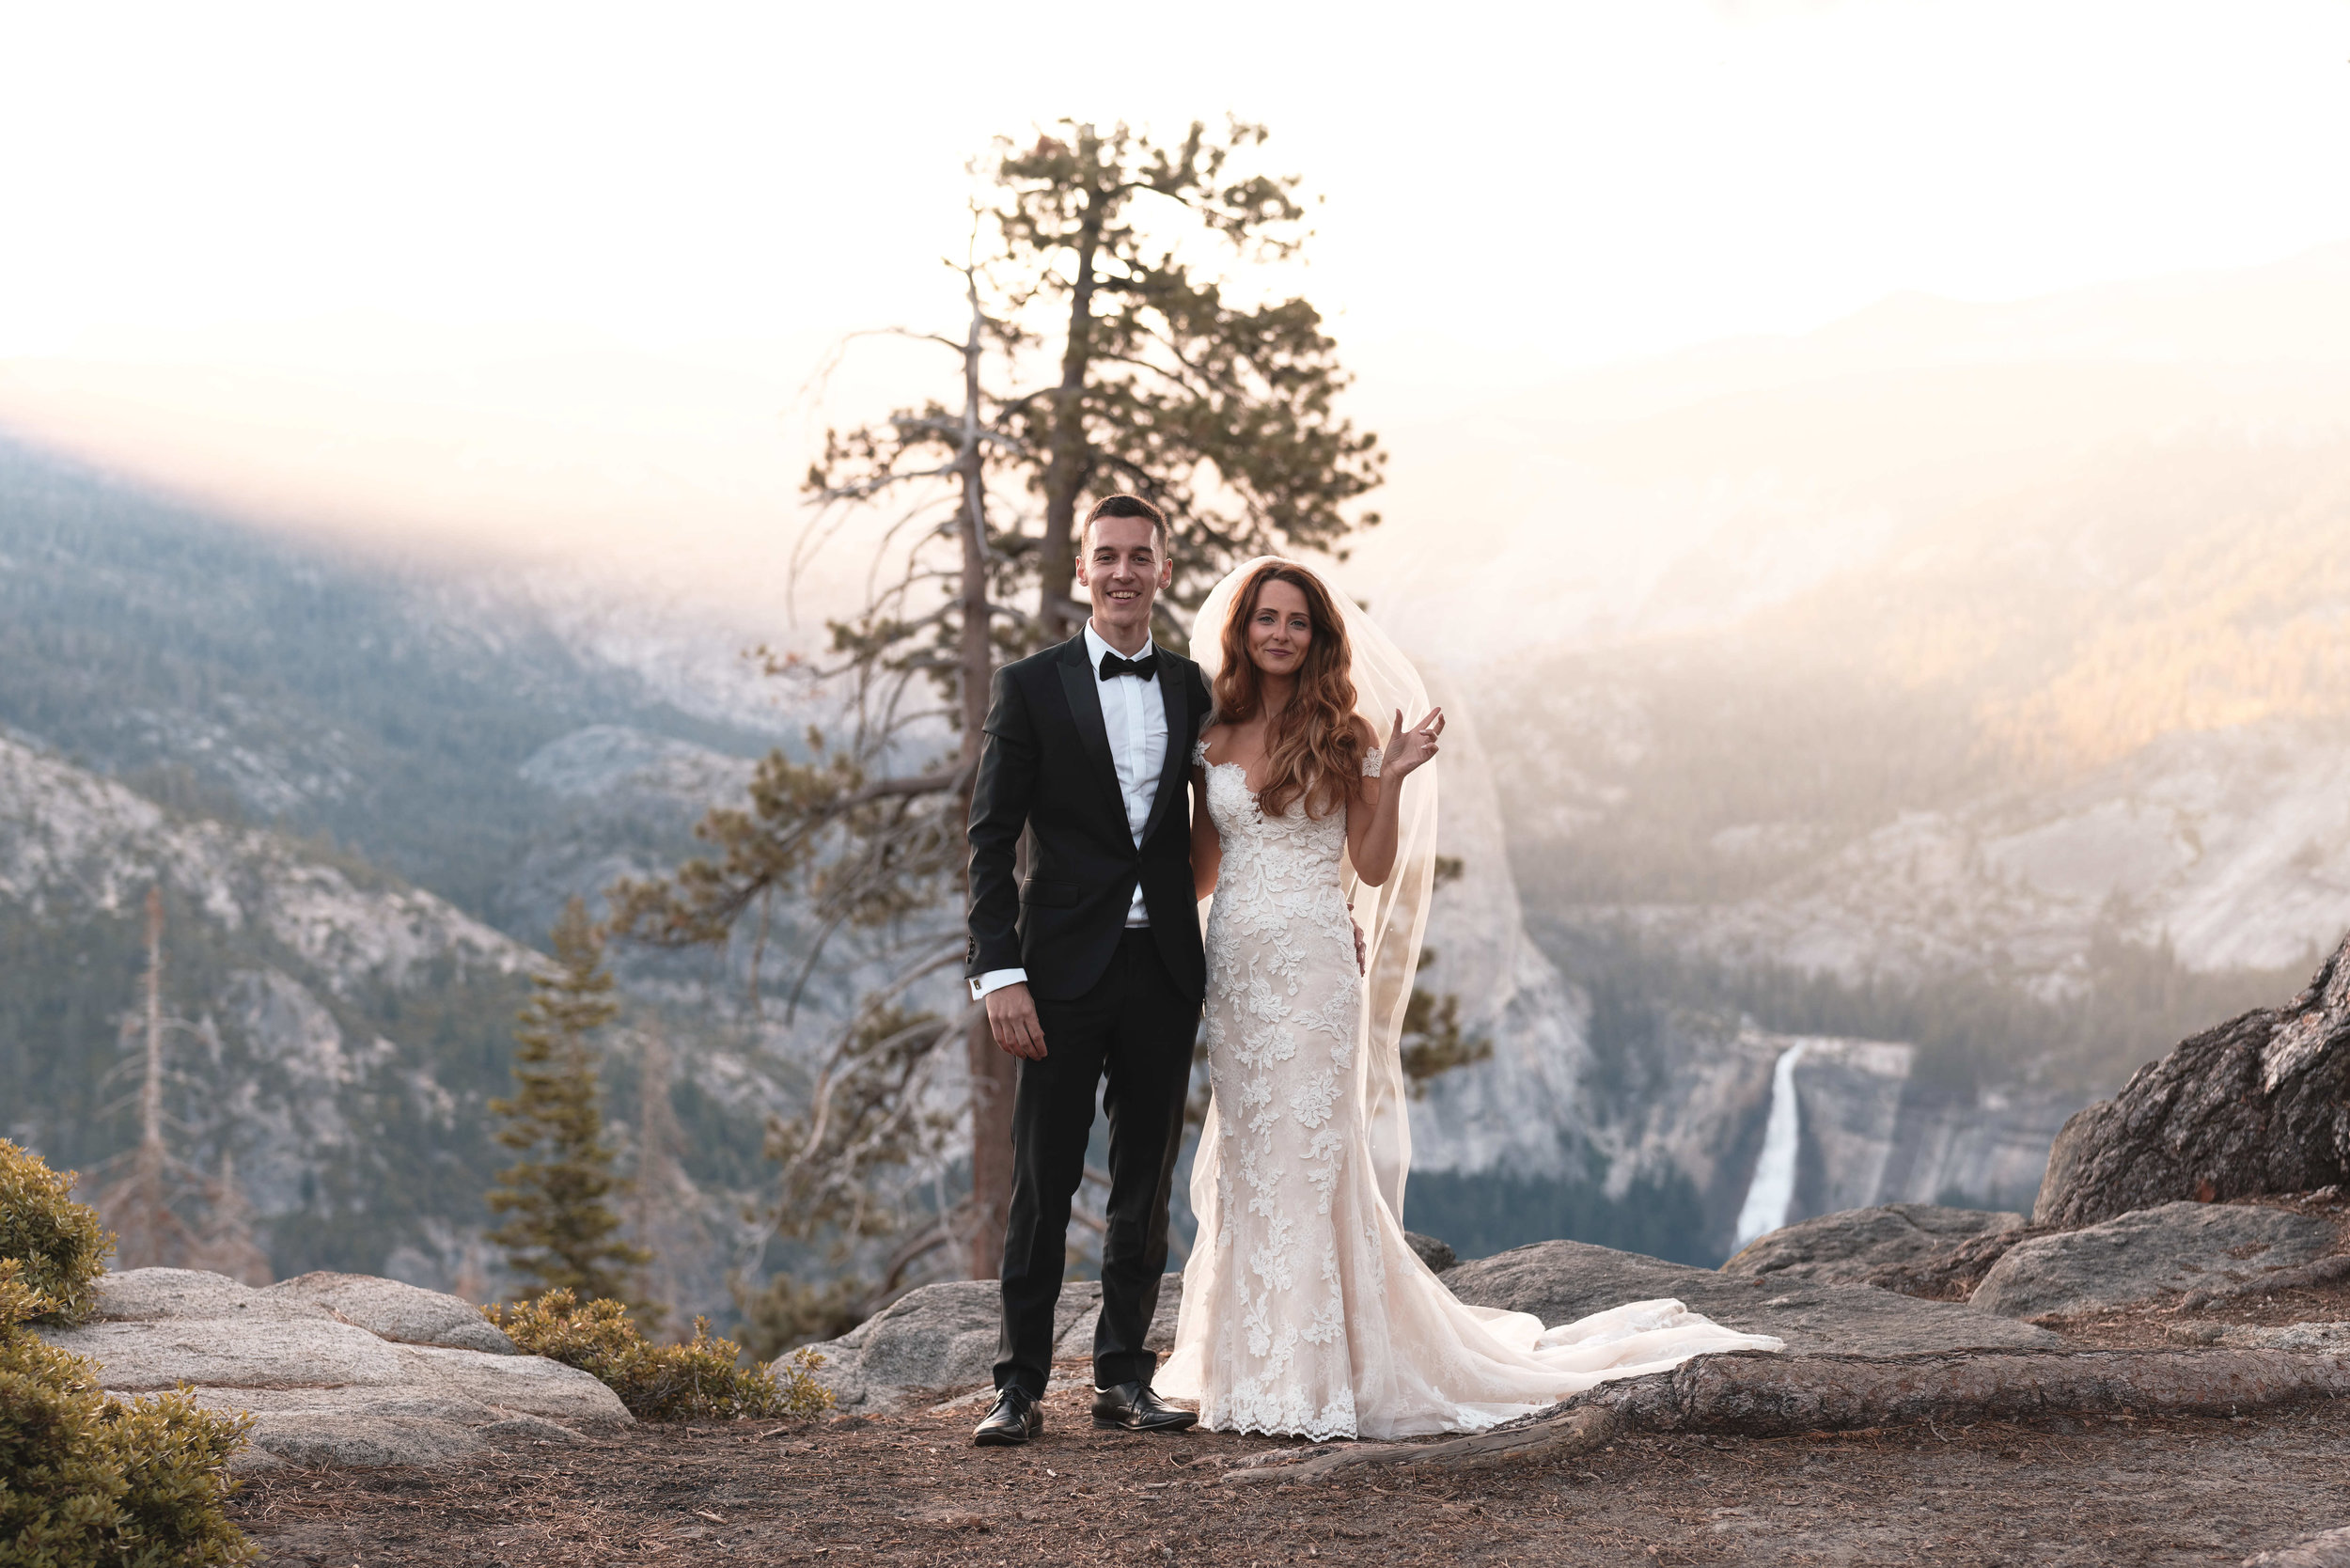 yosemite-adventure-wedding-amyjames (30).jpg